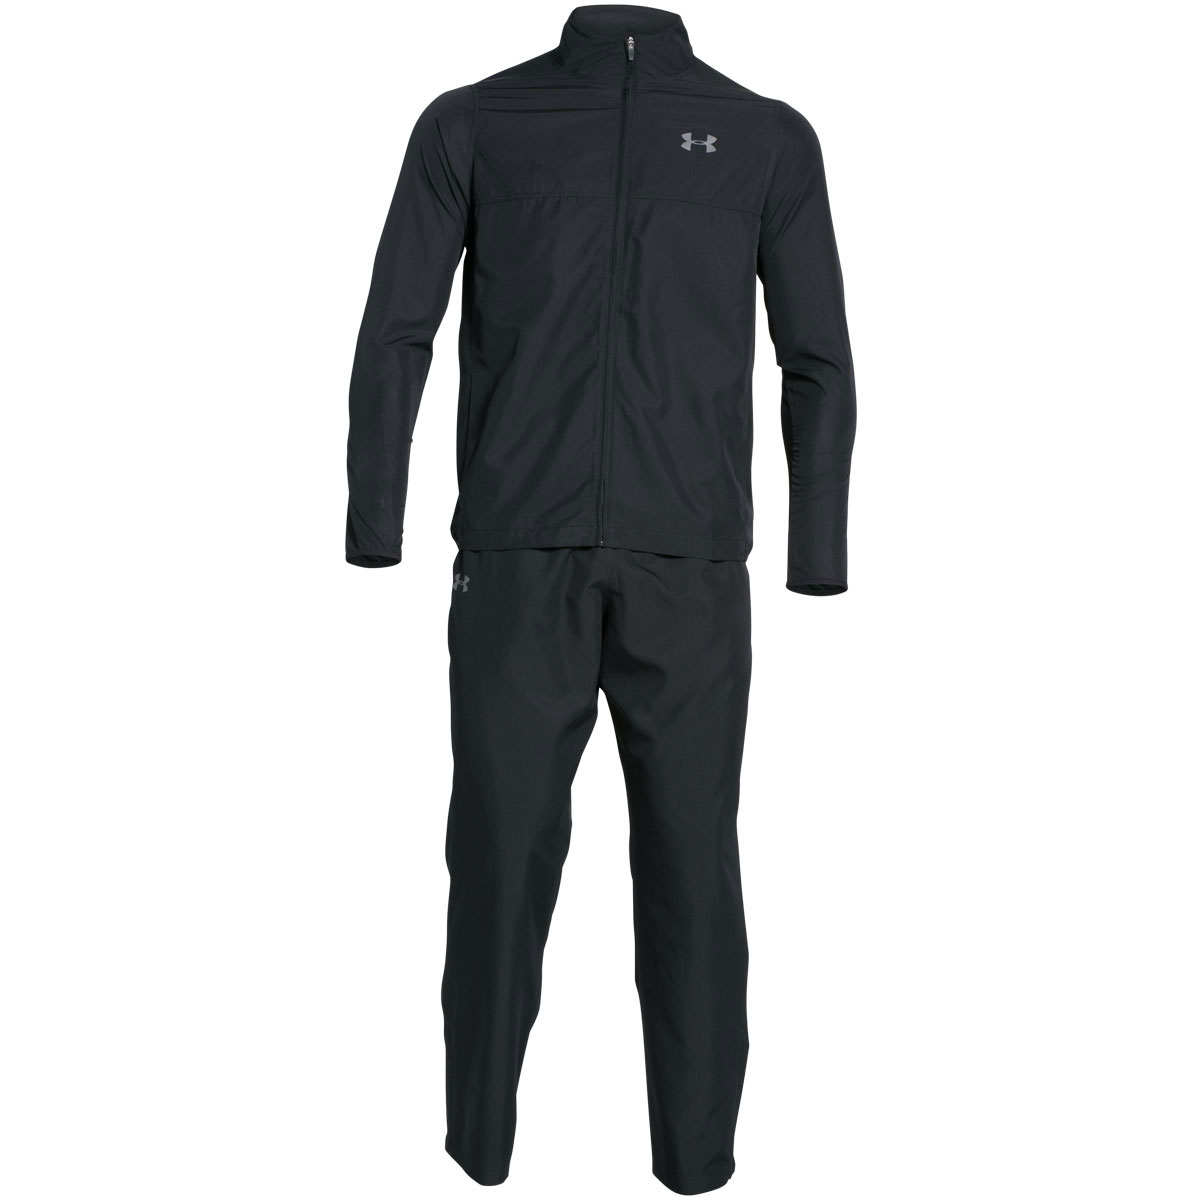 under armour tracksuit. picture 2 of 5 under armour tracksuit r